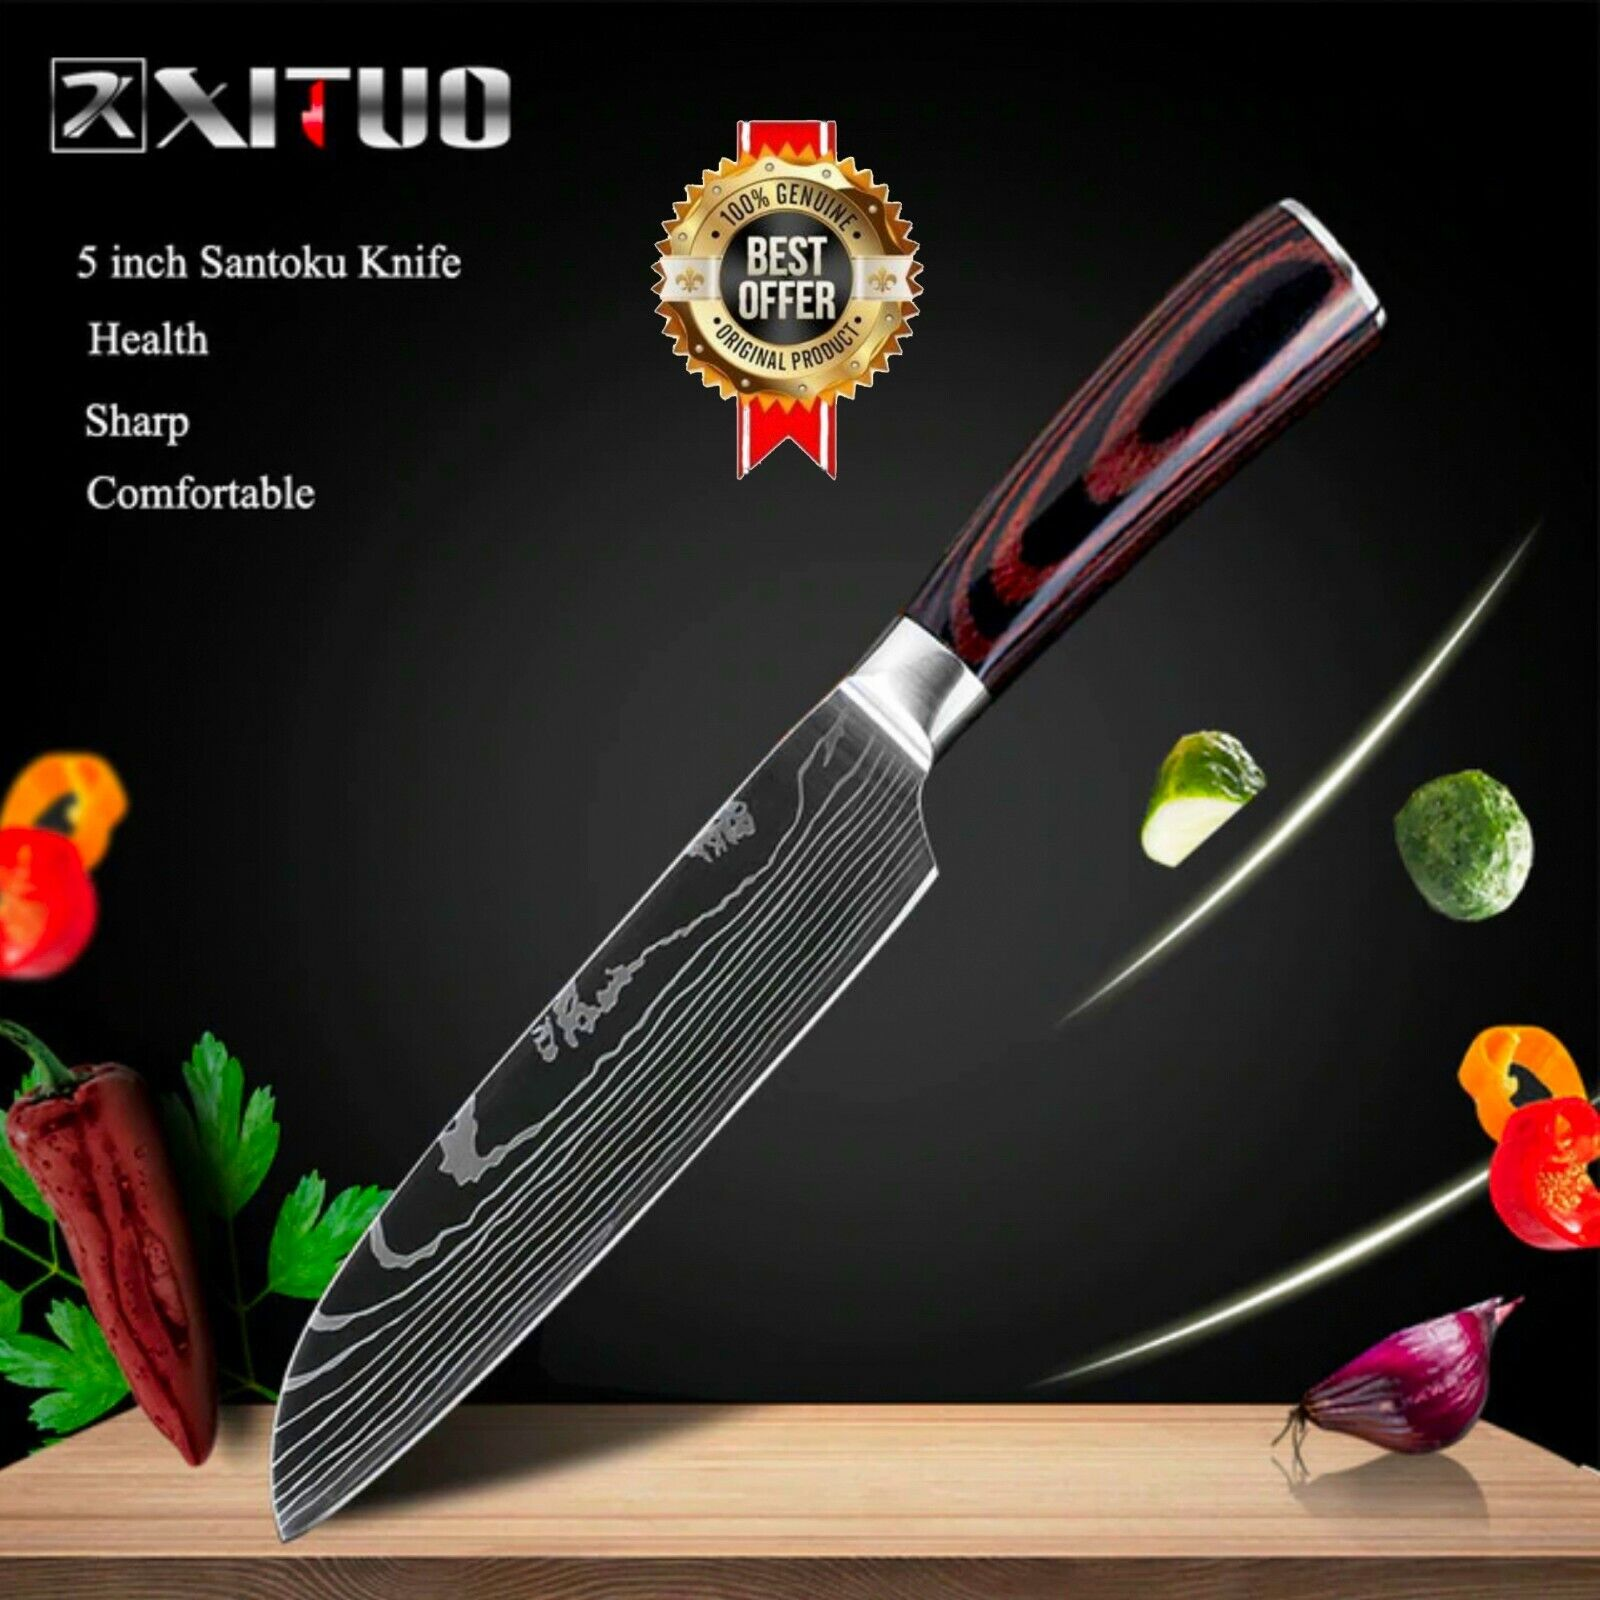 Model-4( 5in Santoku Knife )